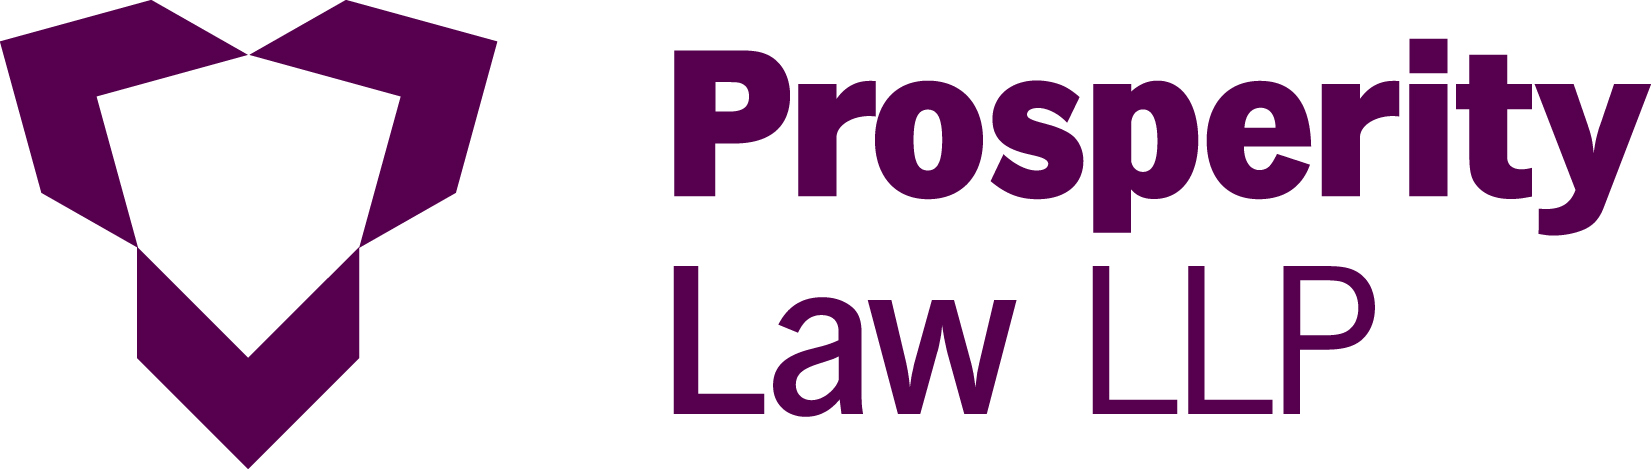 https://www.pro-manchester.co.uk/wp-content/uploads/2020/01/prosperity-law.png